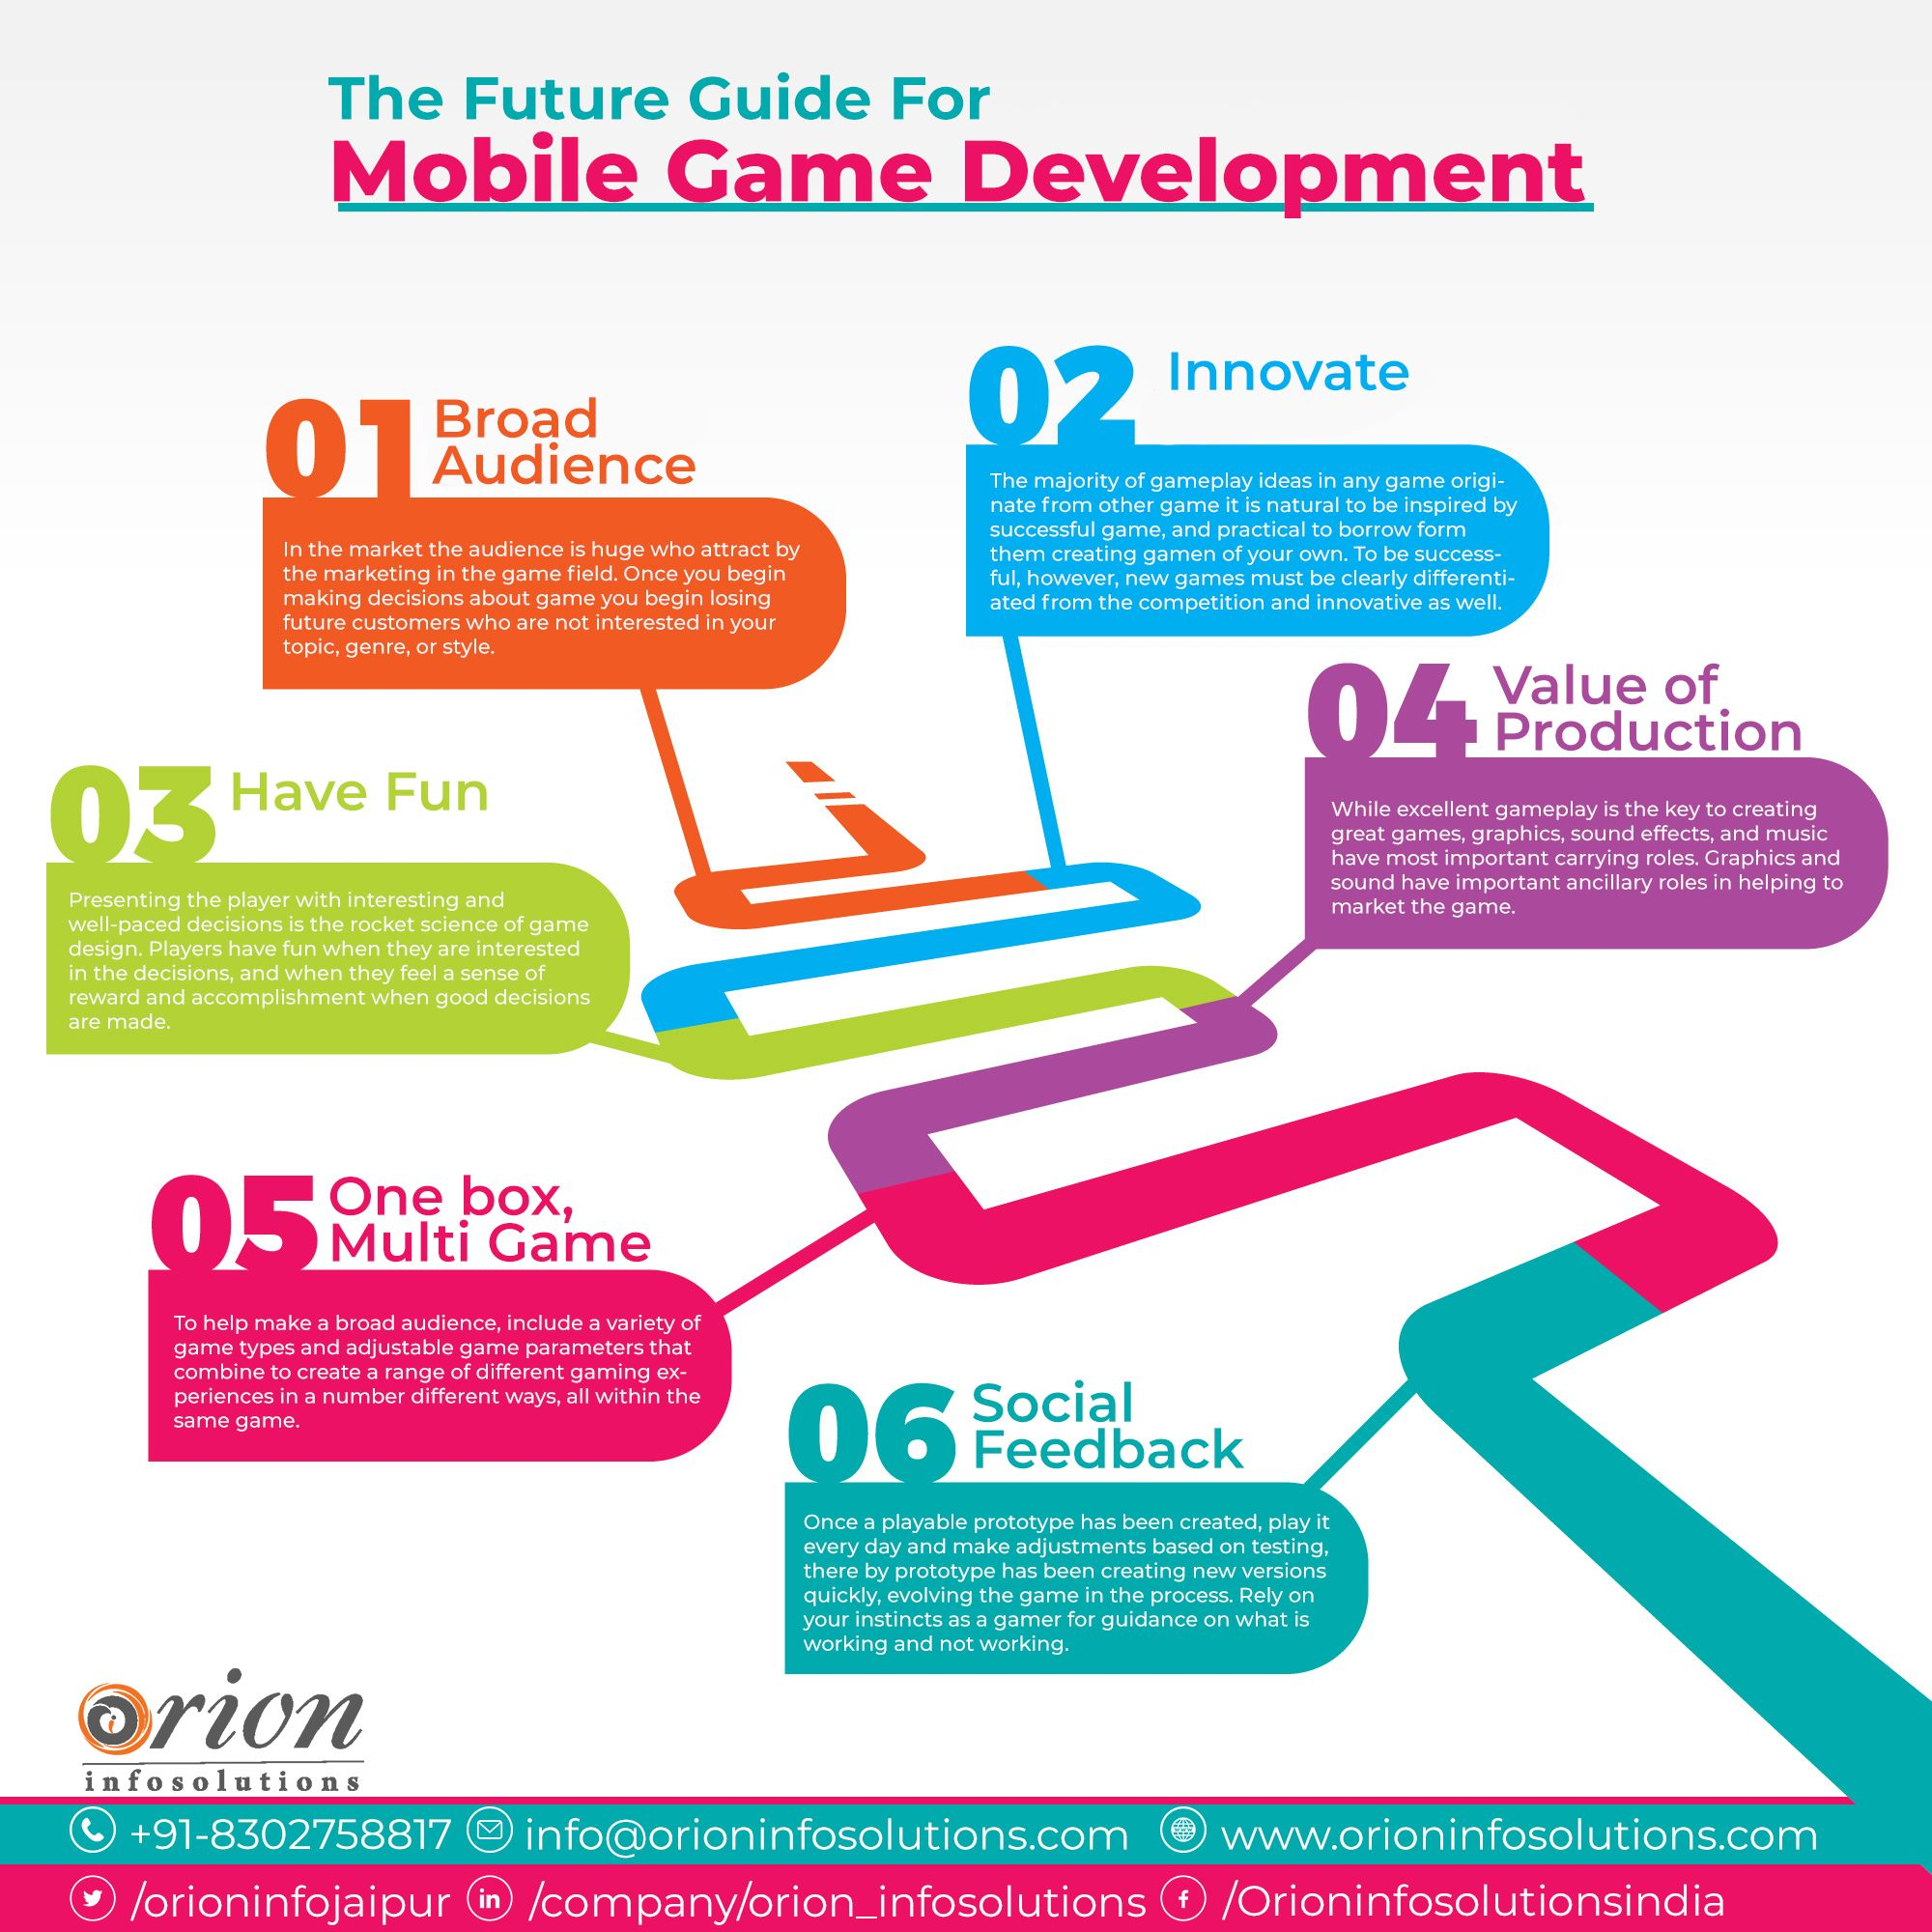 The Ultimate Guide For A Complete Mobile Game Development